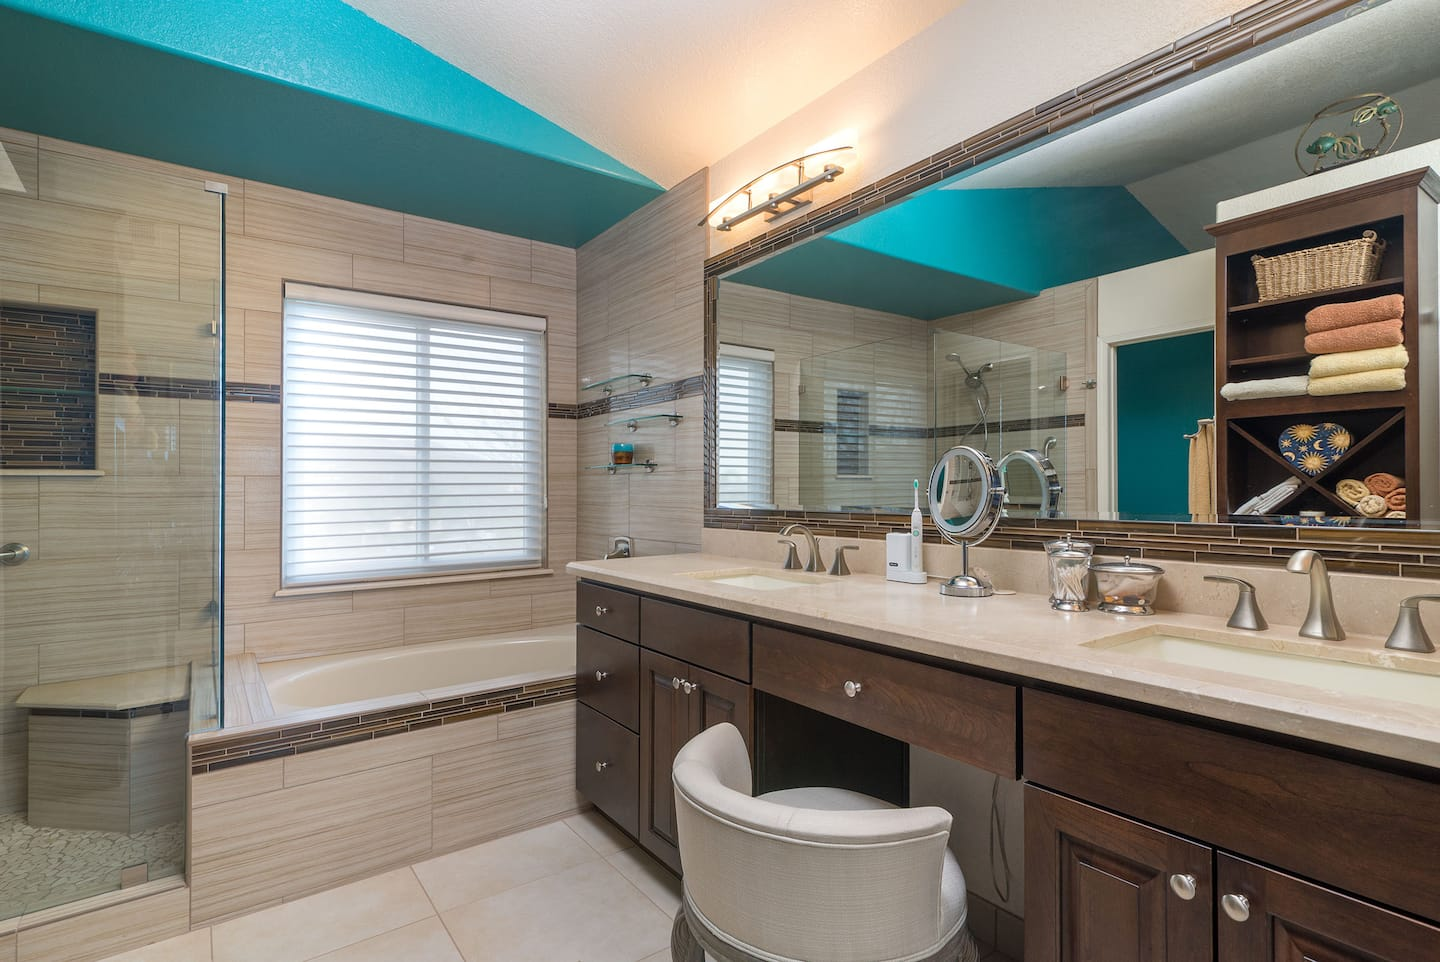 6 ceiling designs to dress up any room angies list bathroom with a teal ceiling dailygadgetfo Images